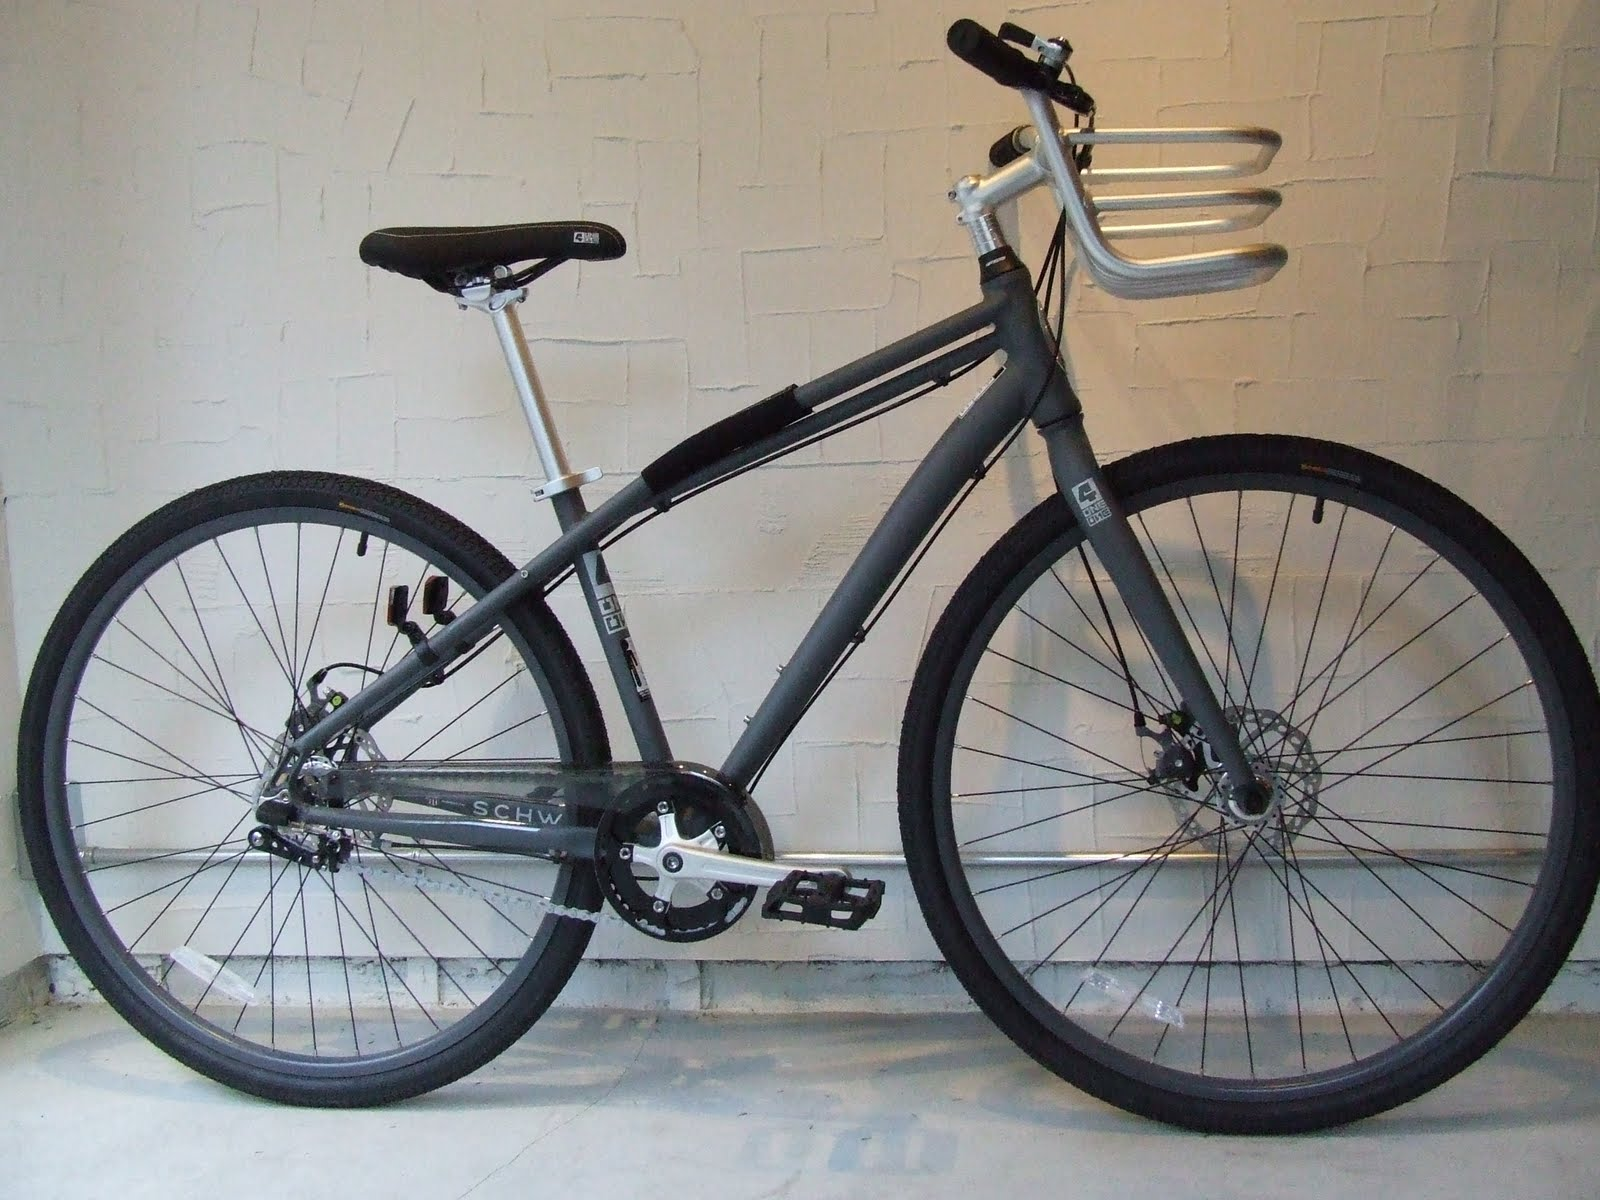 4294a35fbad avelo Bicycle shop: SCHWINN シュウイン コミューターバイク 411 IG5 SALE